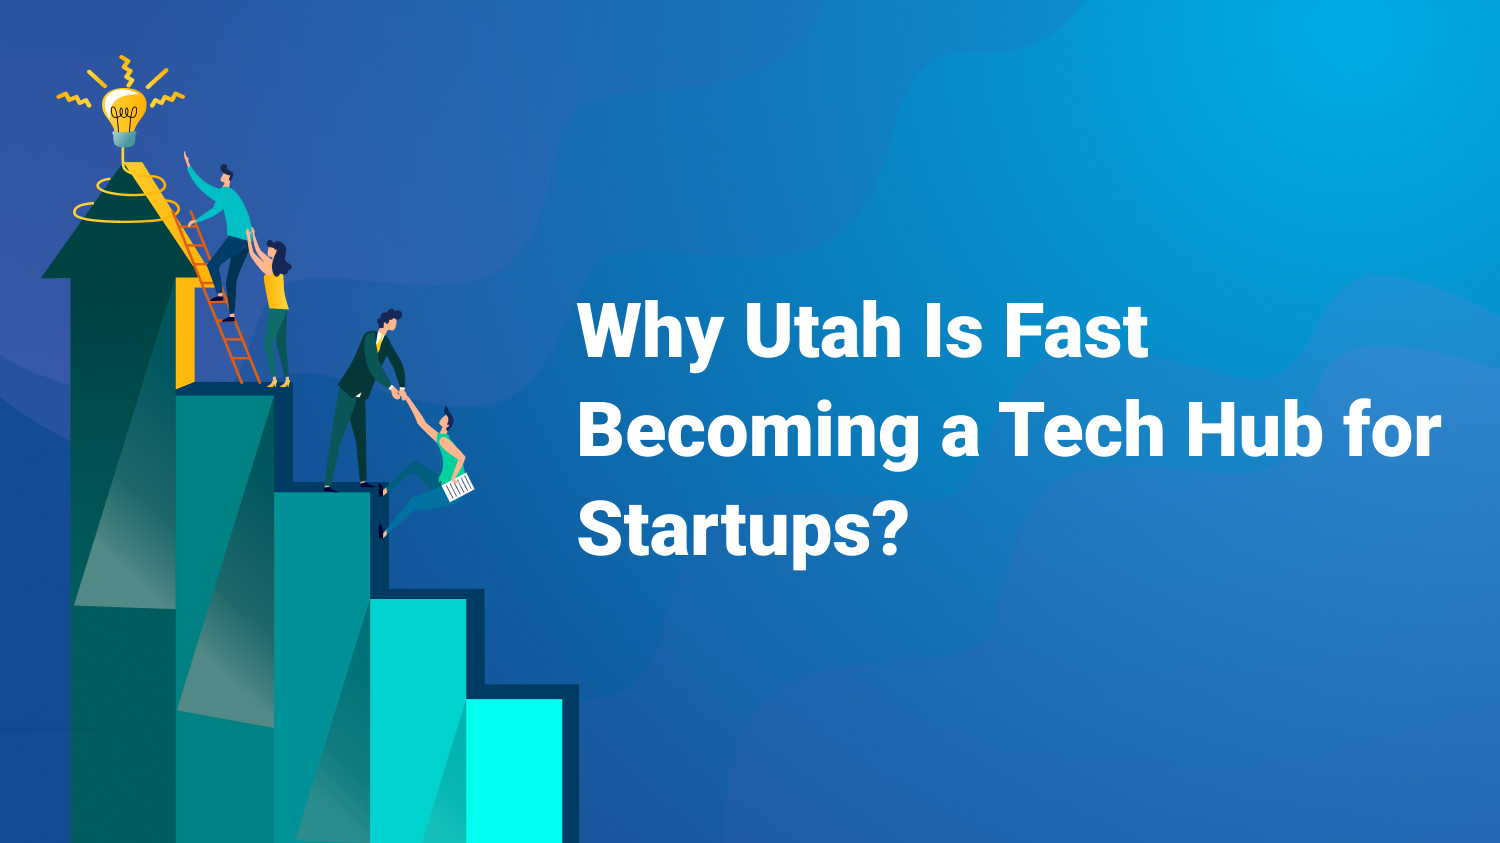 Why Utah Is Fast Becoming a Tech Hub for Startups?